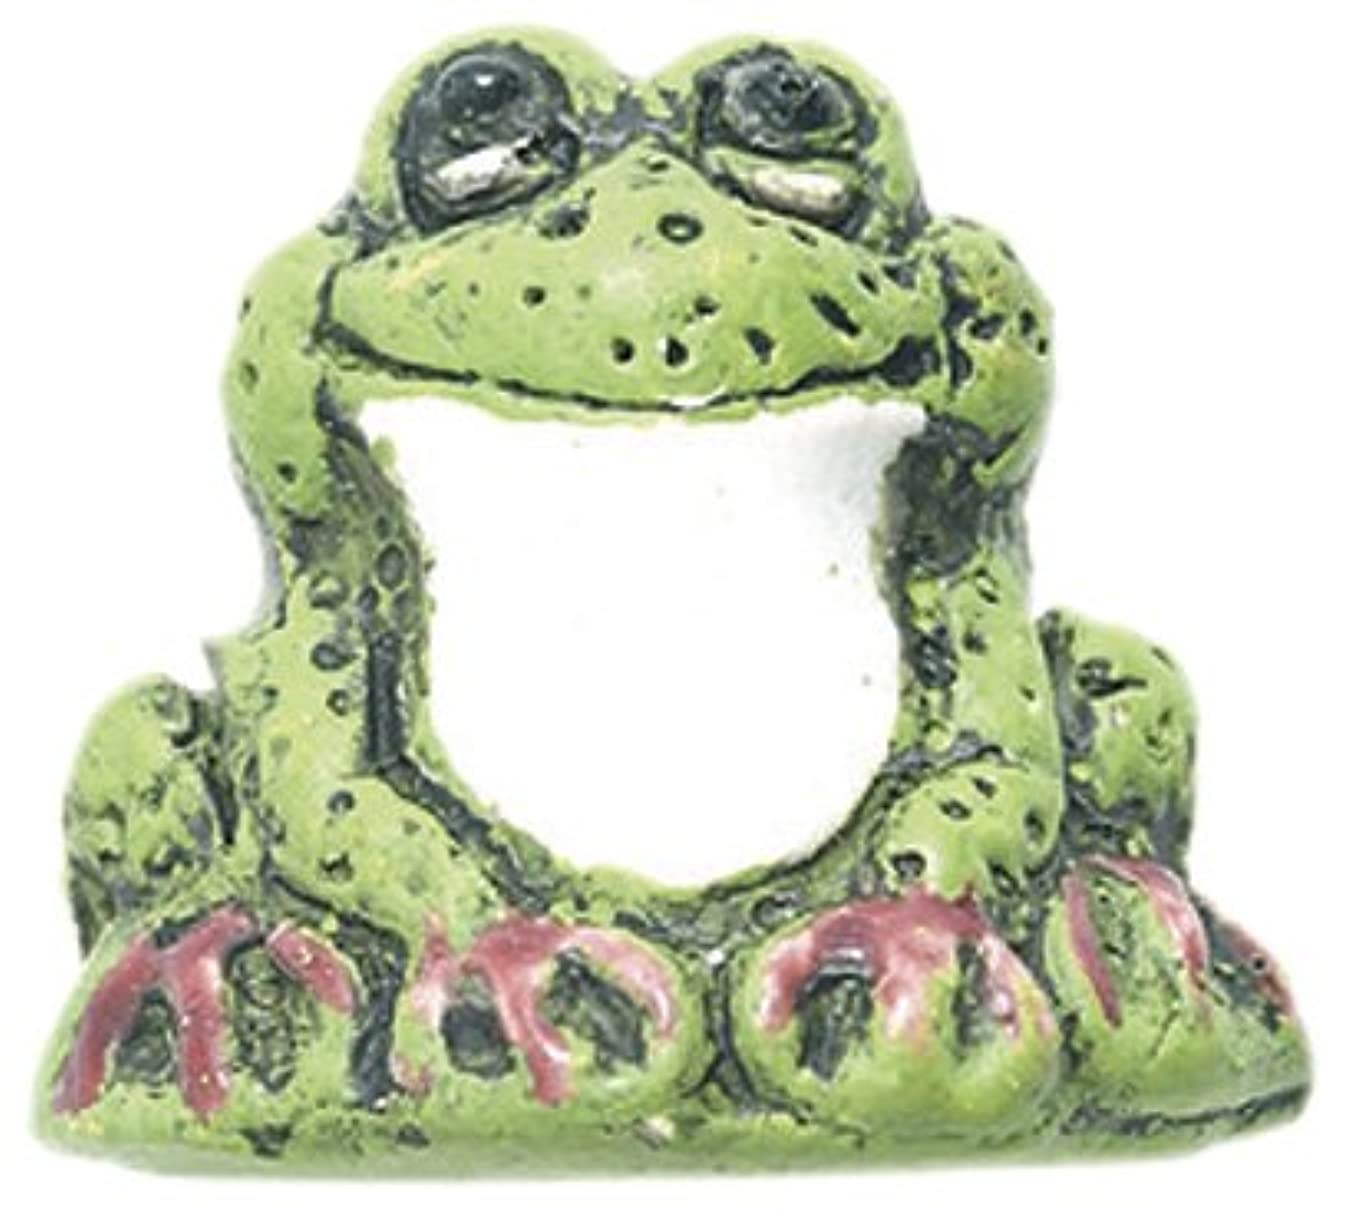 Shipwreck Beads 21 by 23mm Peruvian Hand Crafted Ceramic Frog Beads, Light Green, 3 per Pack